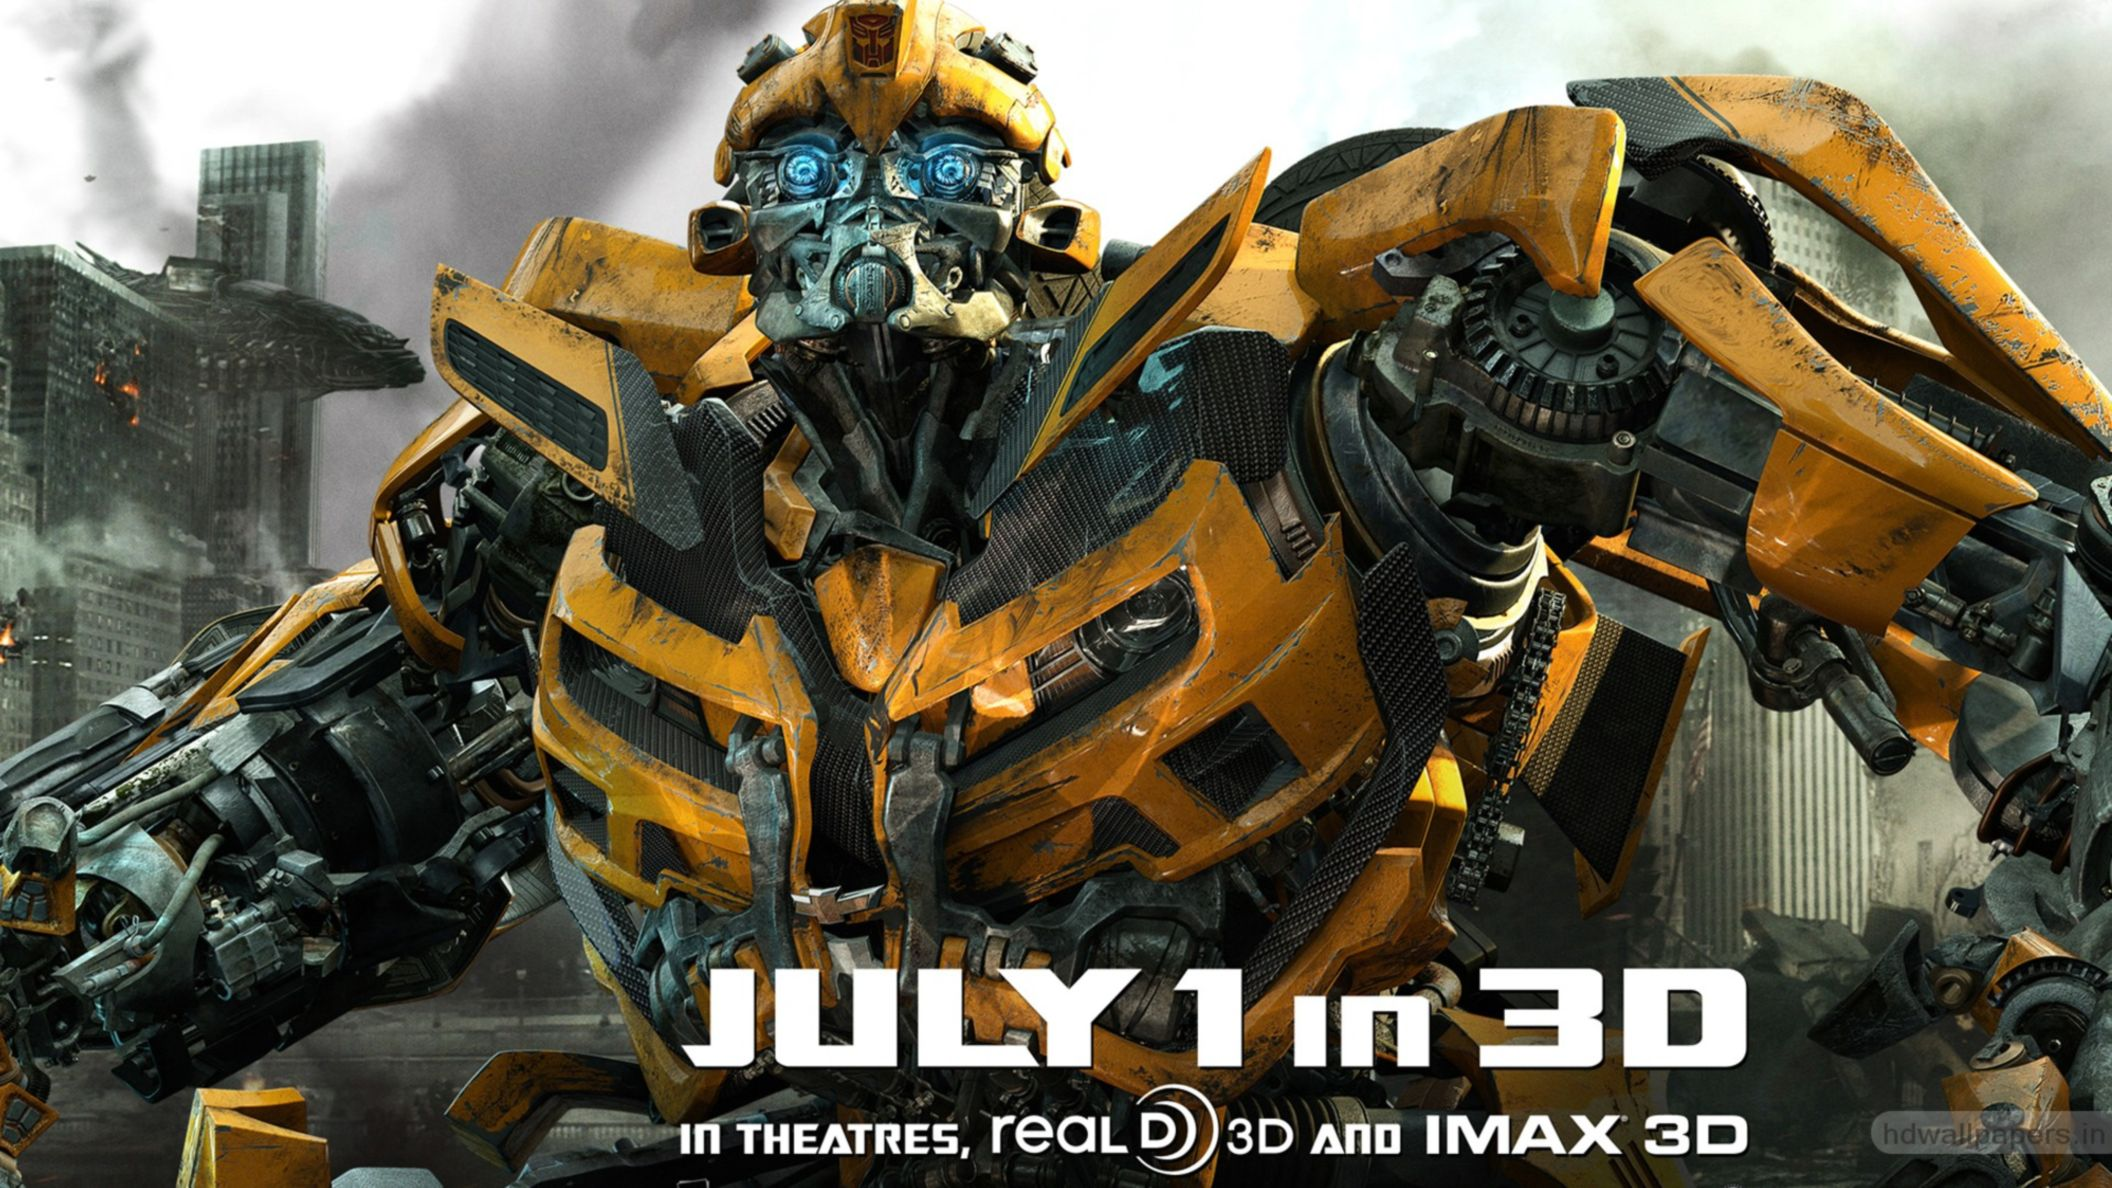 Download free HD Bumblebee In New Transformers 3 HD Wallpaper, image